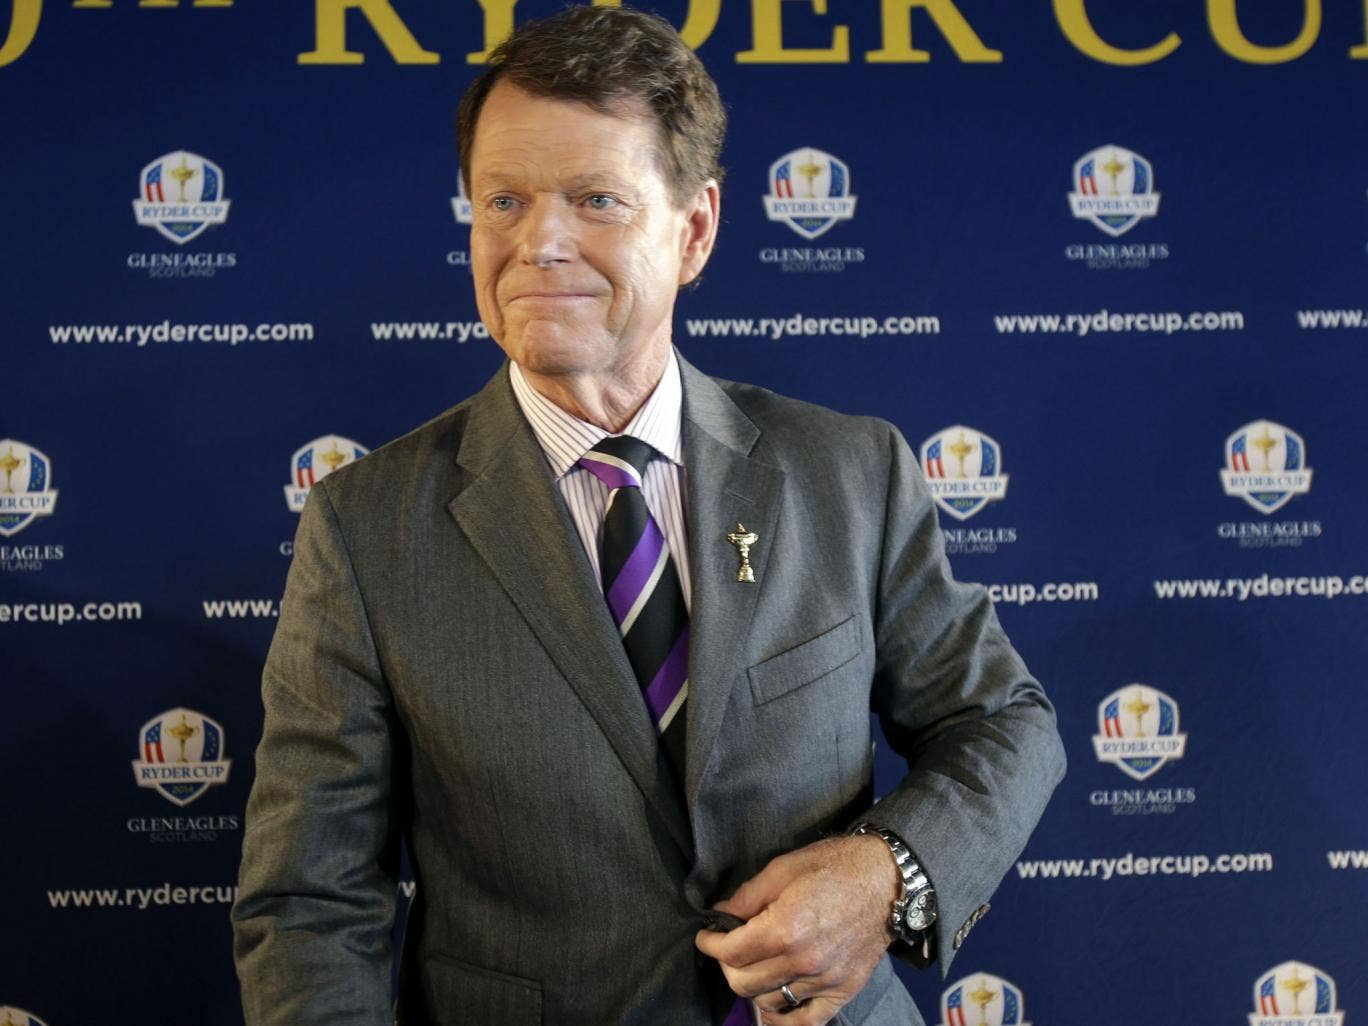 Tom Watson was named America's next Ryder Cup captain yesterday